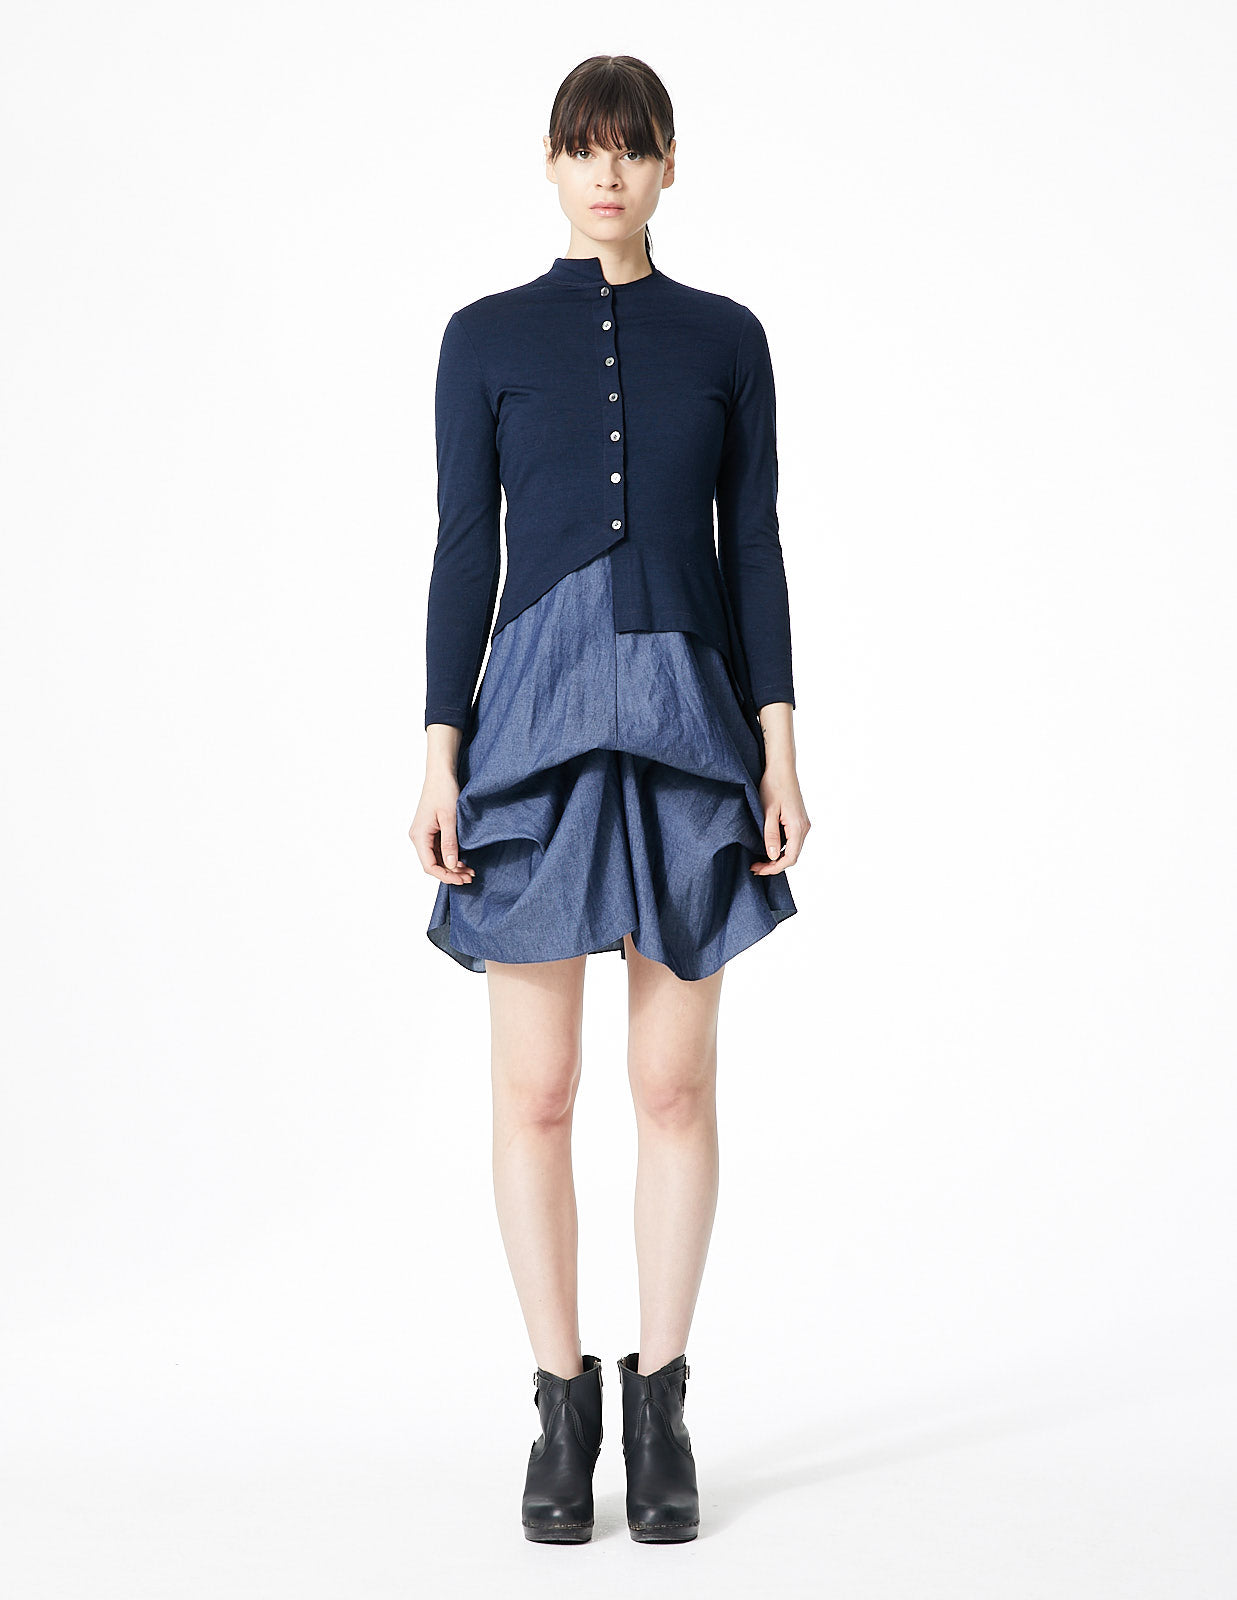 morgane le fay short a-line skirt with high waist and adjustable ties to effect drapery. hidden zip closure at back.